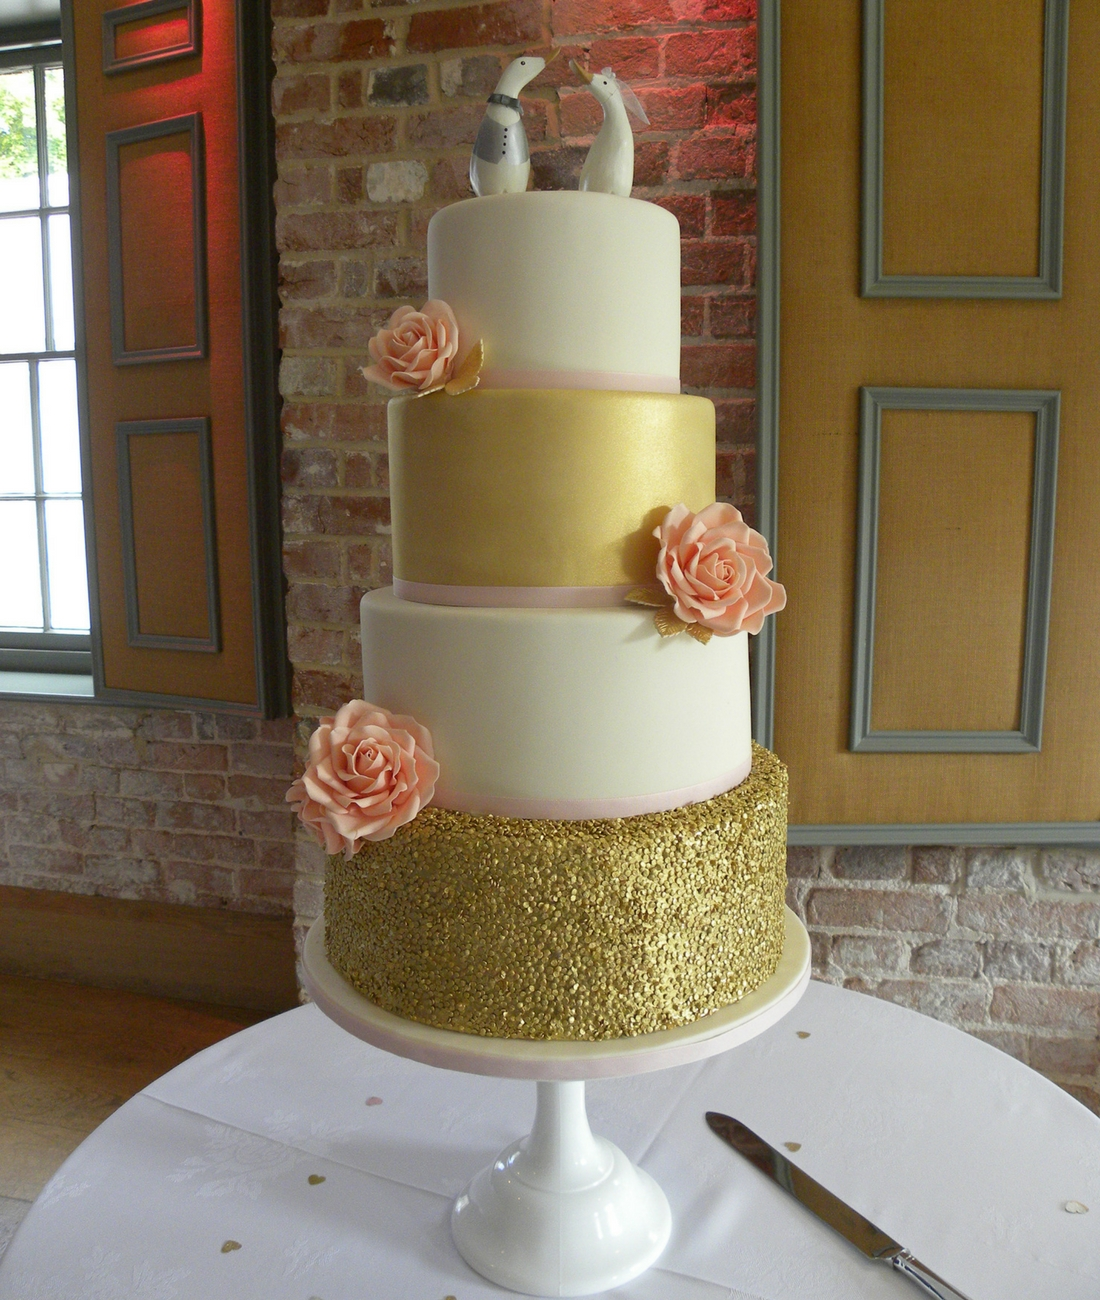 Love Artisan Wedding Cakes - Gold Sparkly Confetti Wedding Cake